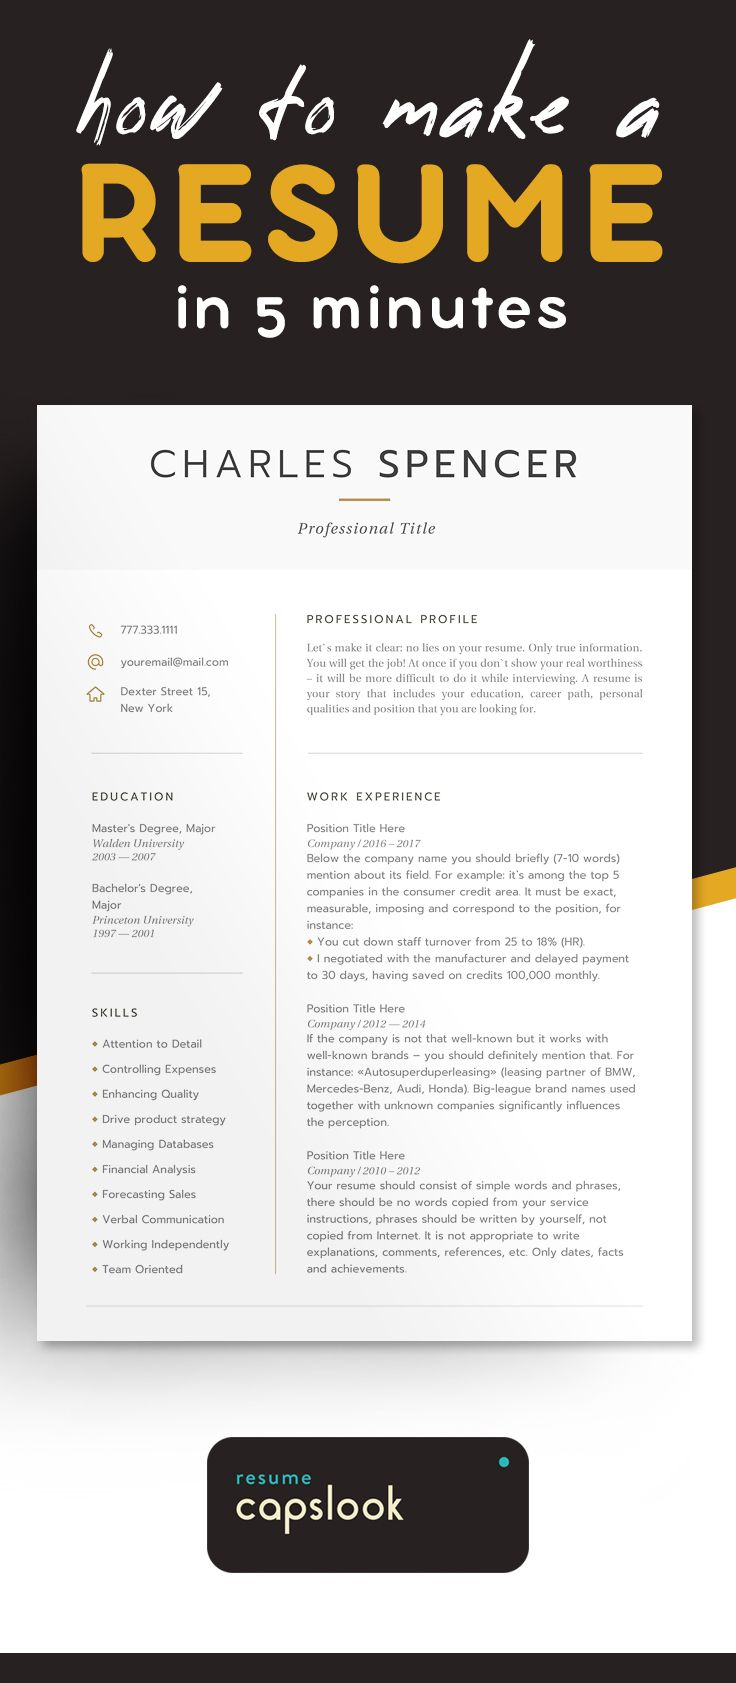 Download Resume Templates From Capslook Our Battle Tested Resume Designs Are Proven To How To Make Resume Resume Template Professional Modern Resume Template